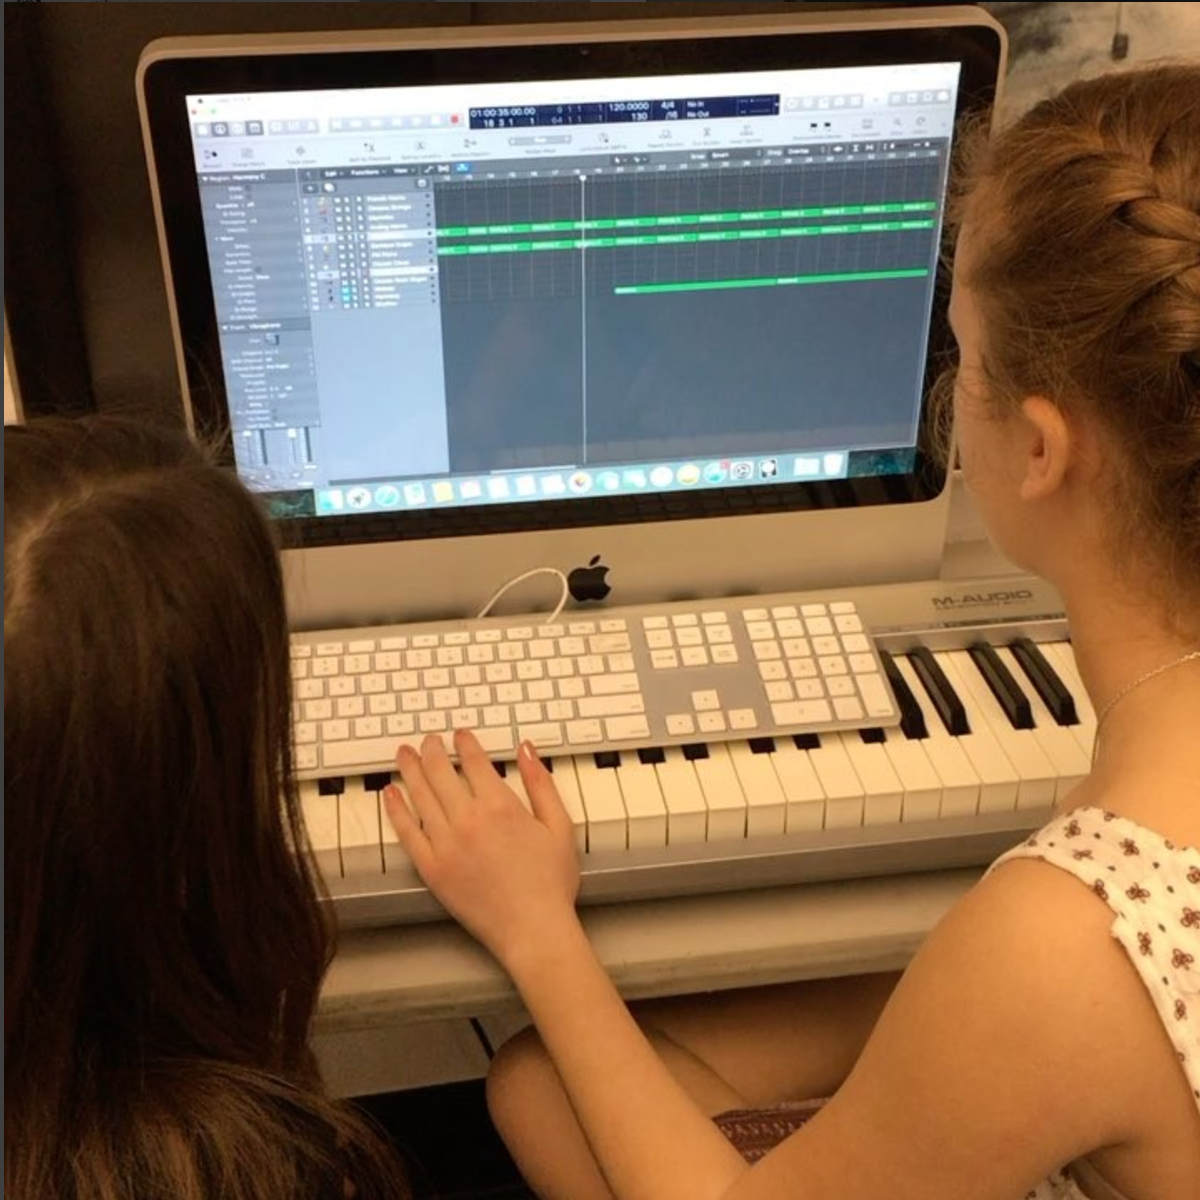 Student working on Vocal music project on an iMac